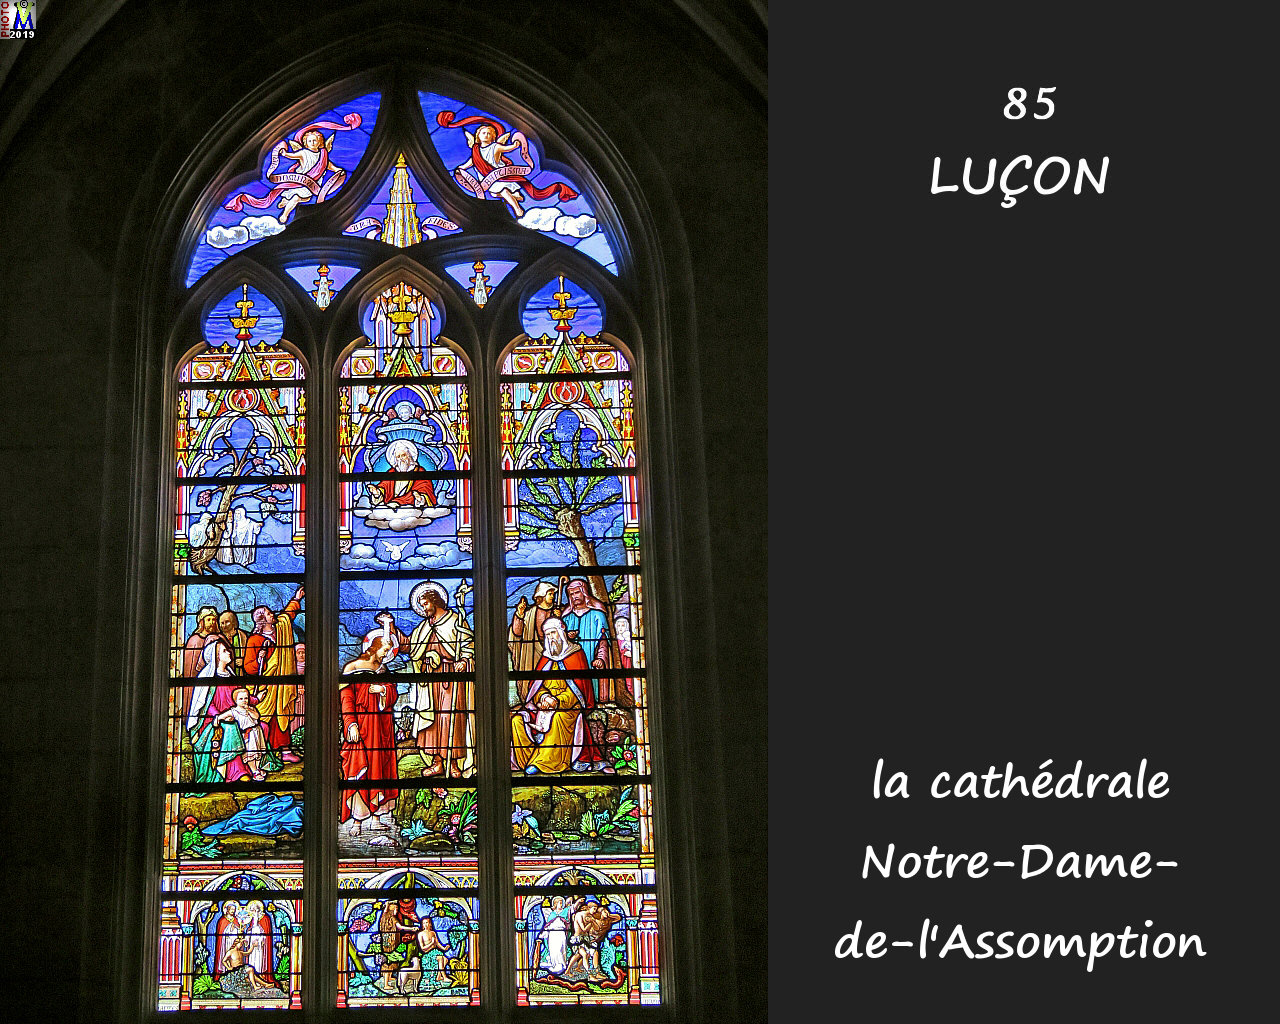 85LUCON_cathedrale_222.jpg